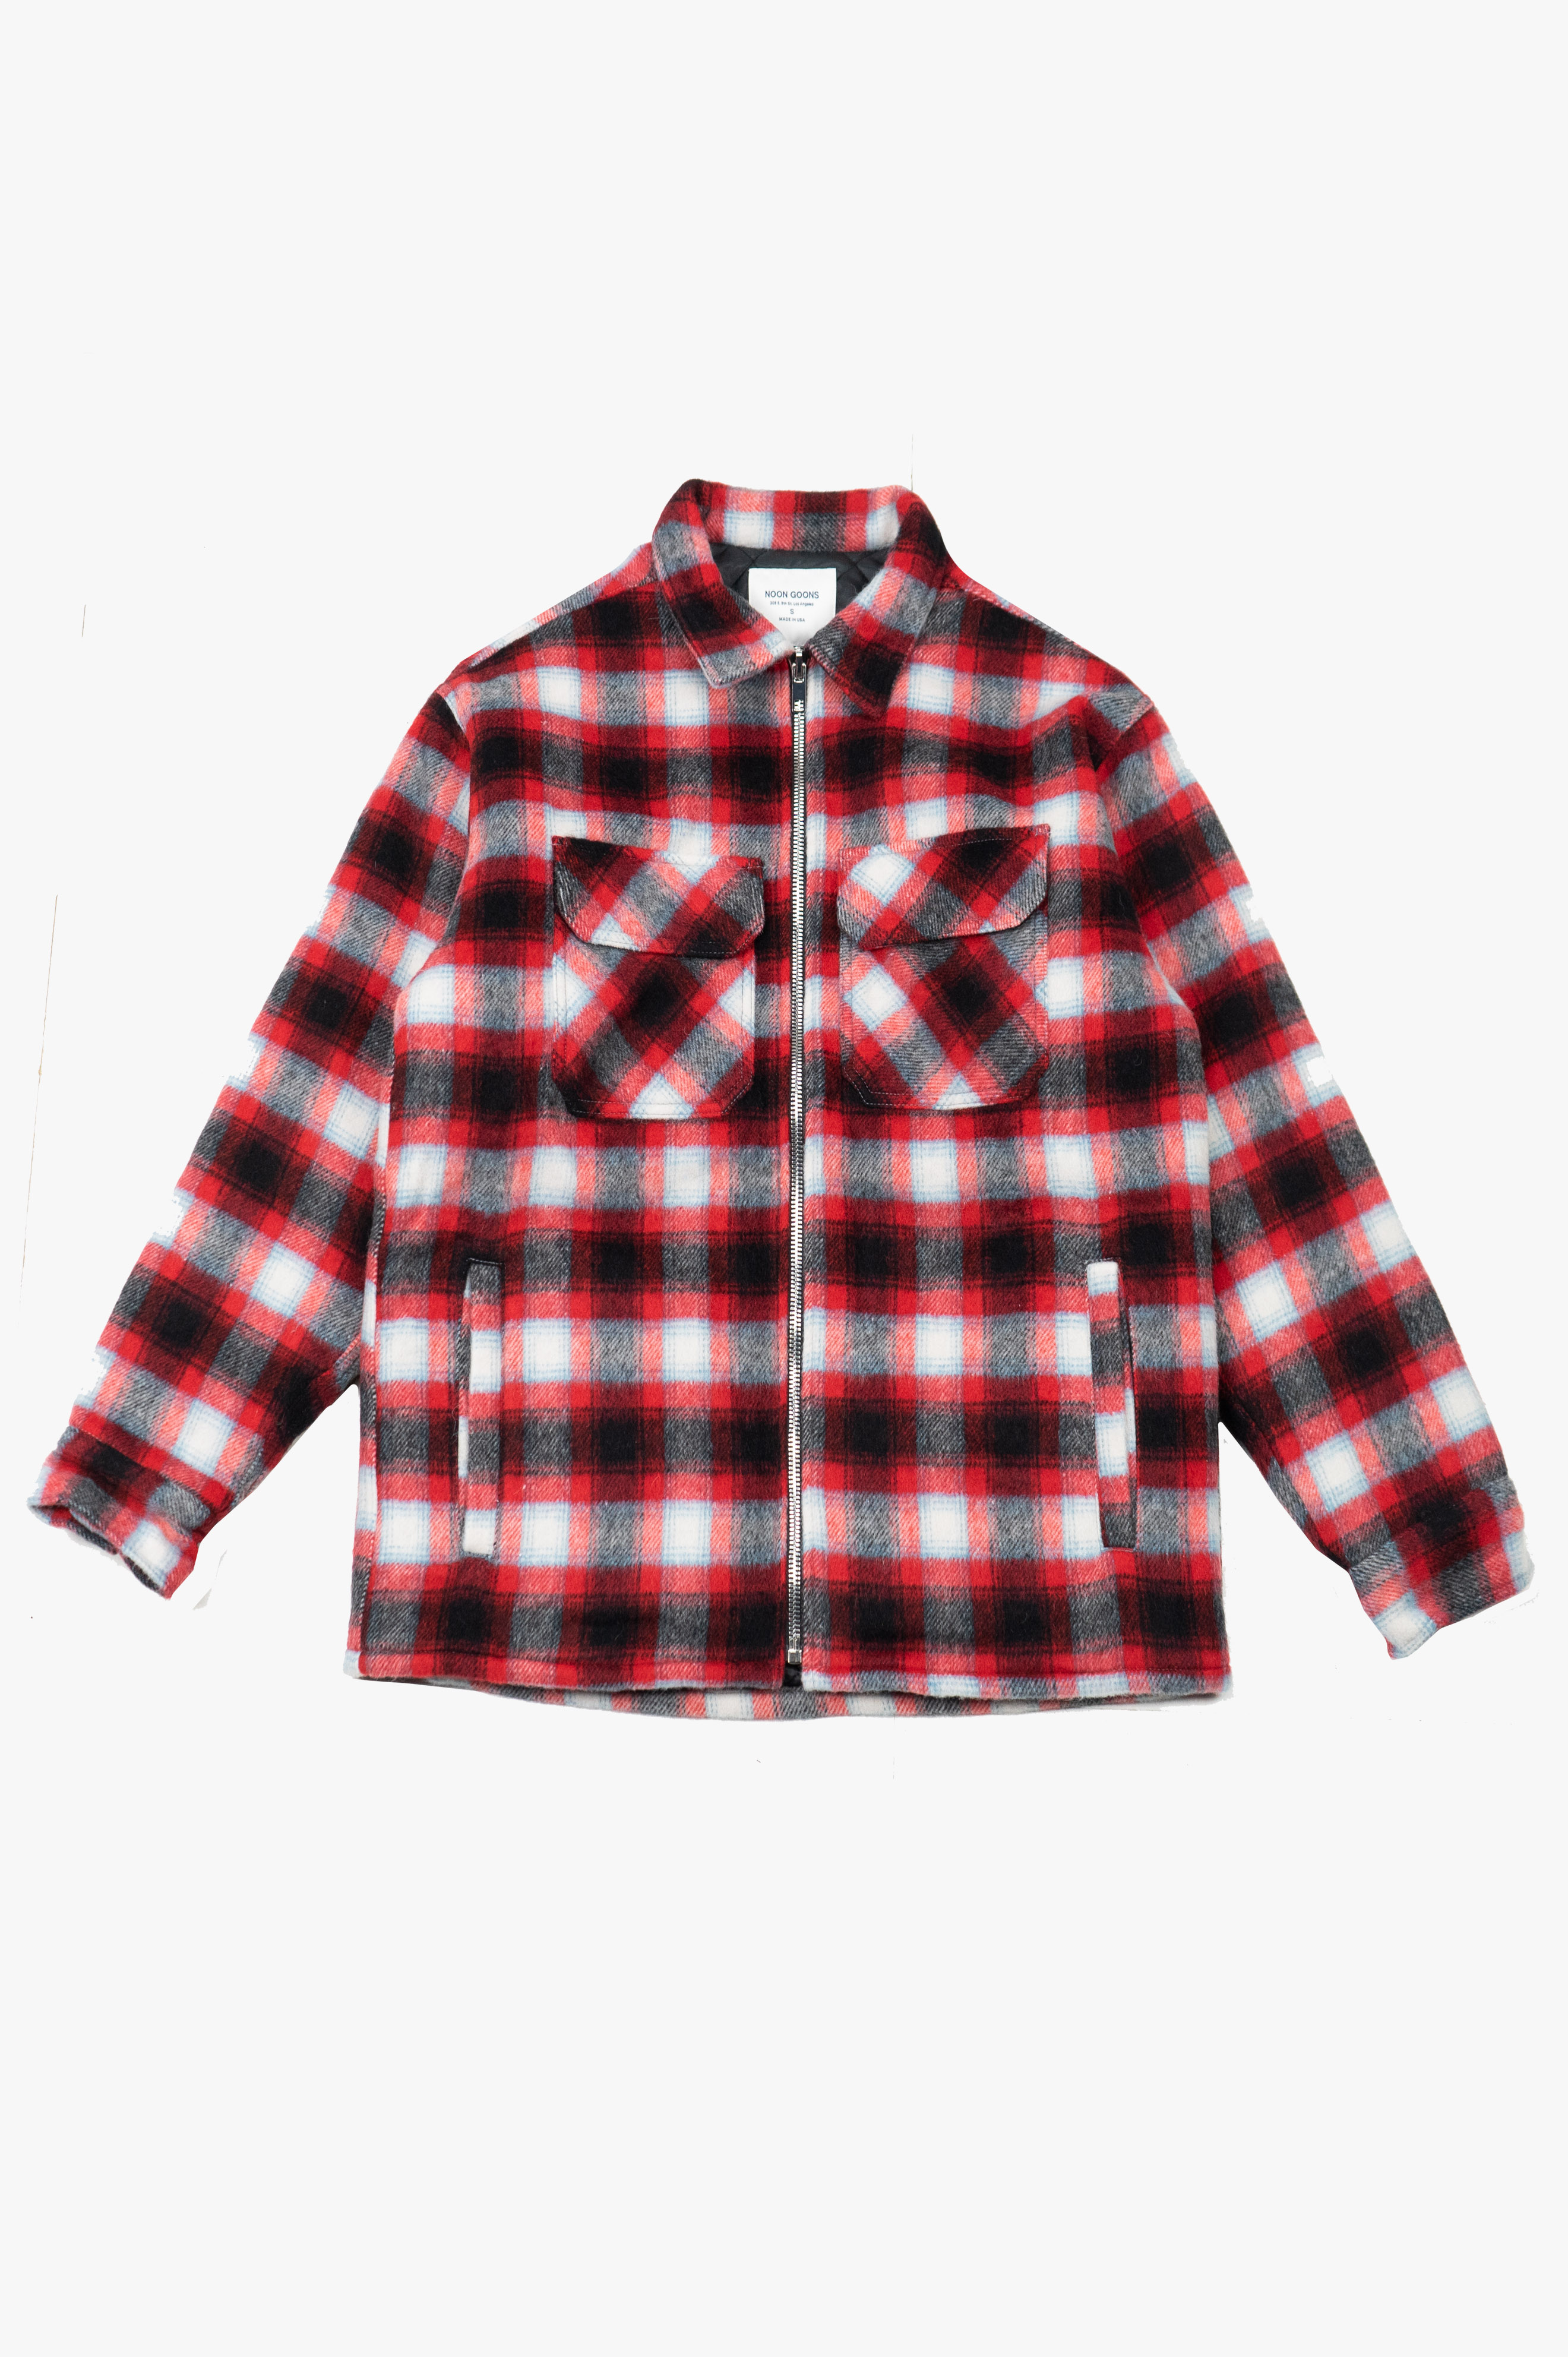 Best Coast Jacket Red